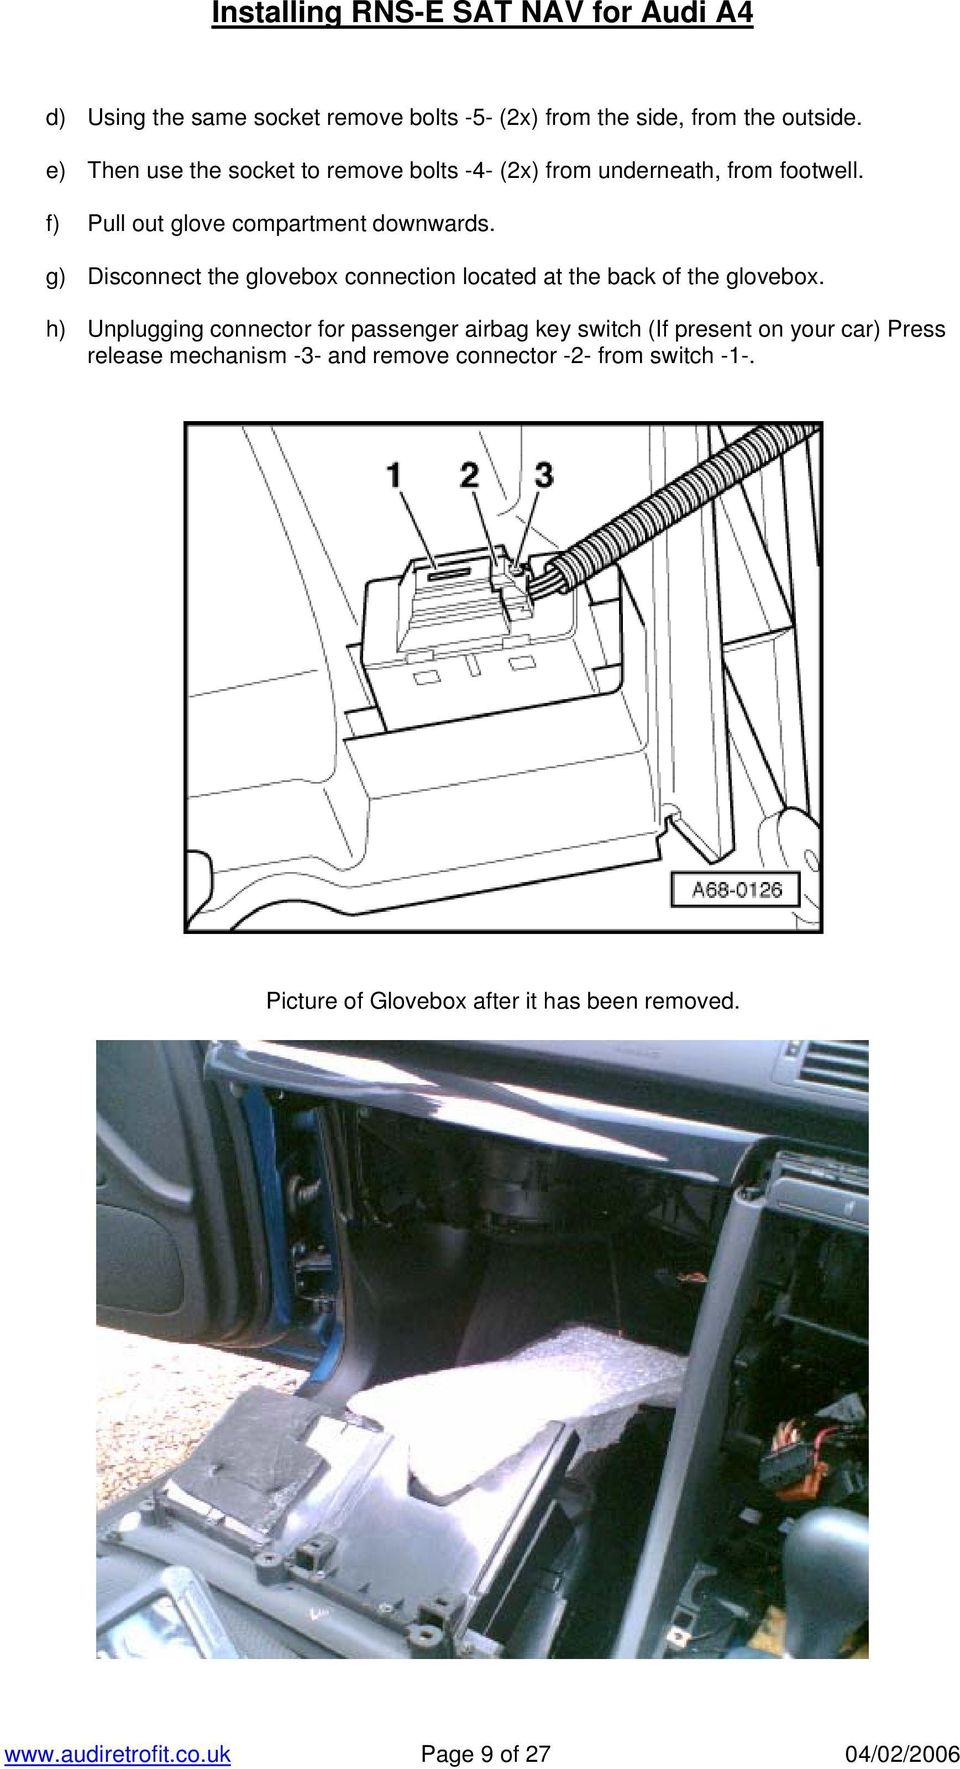 g) Disconnect the glovebox connection located at the back of the glovebox.